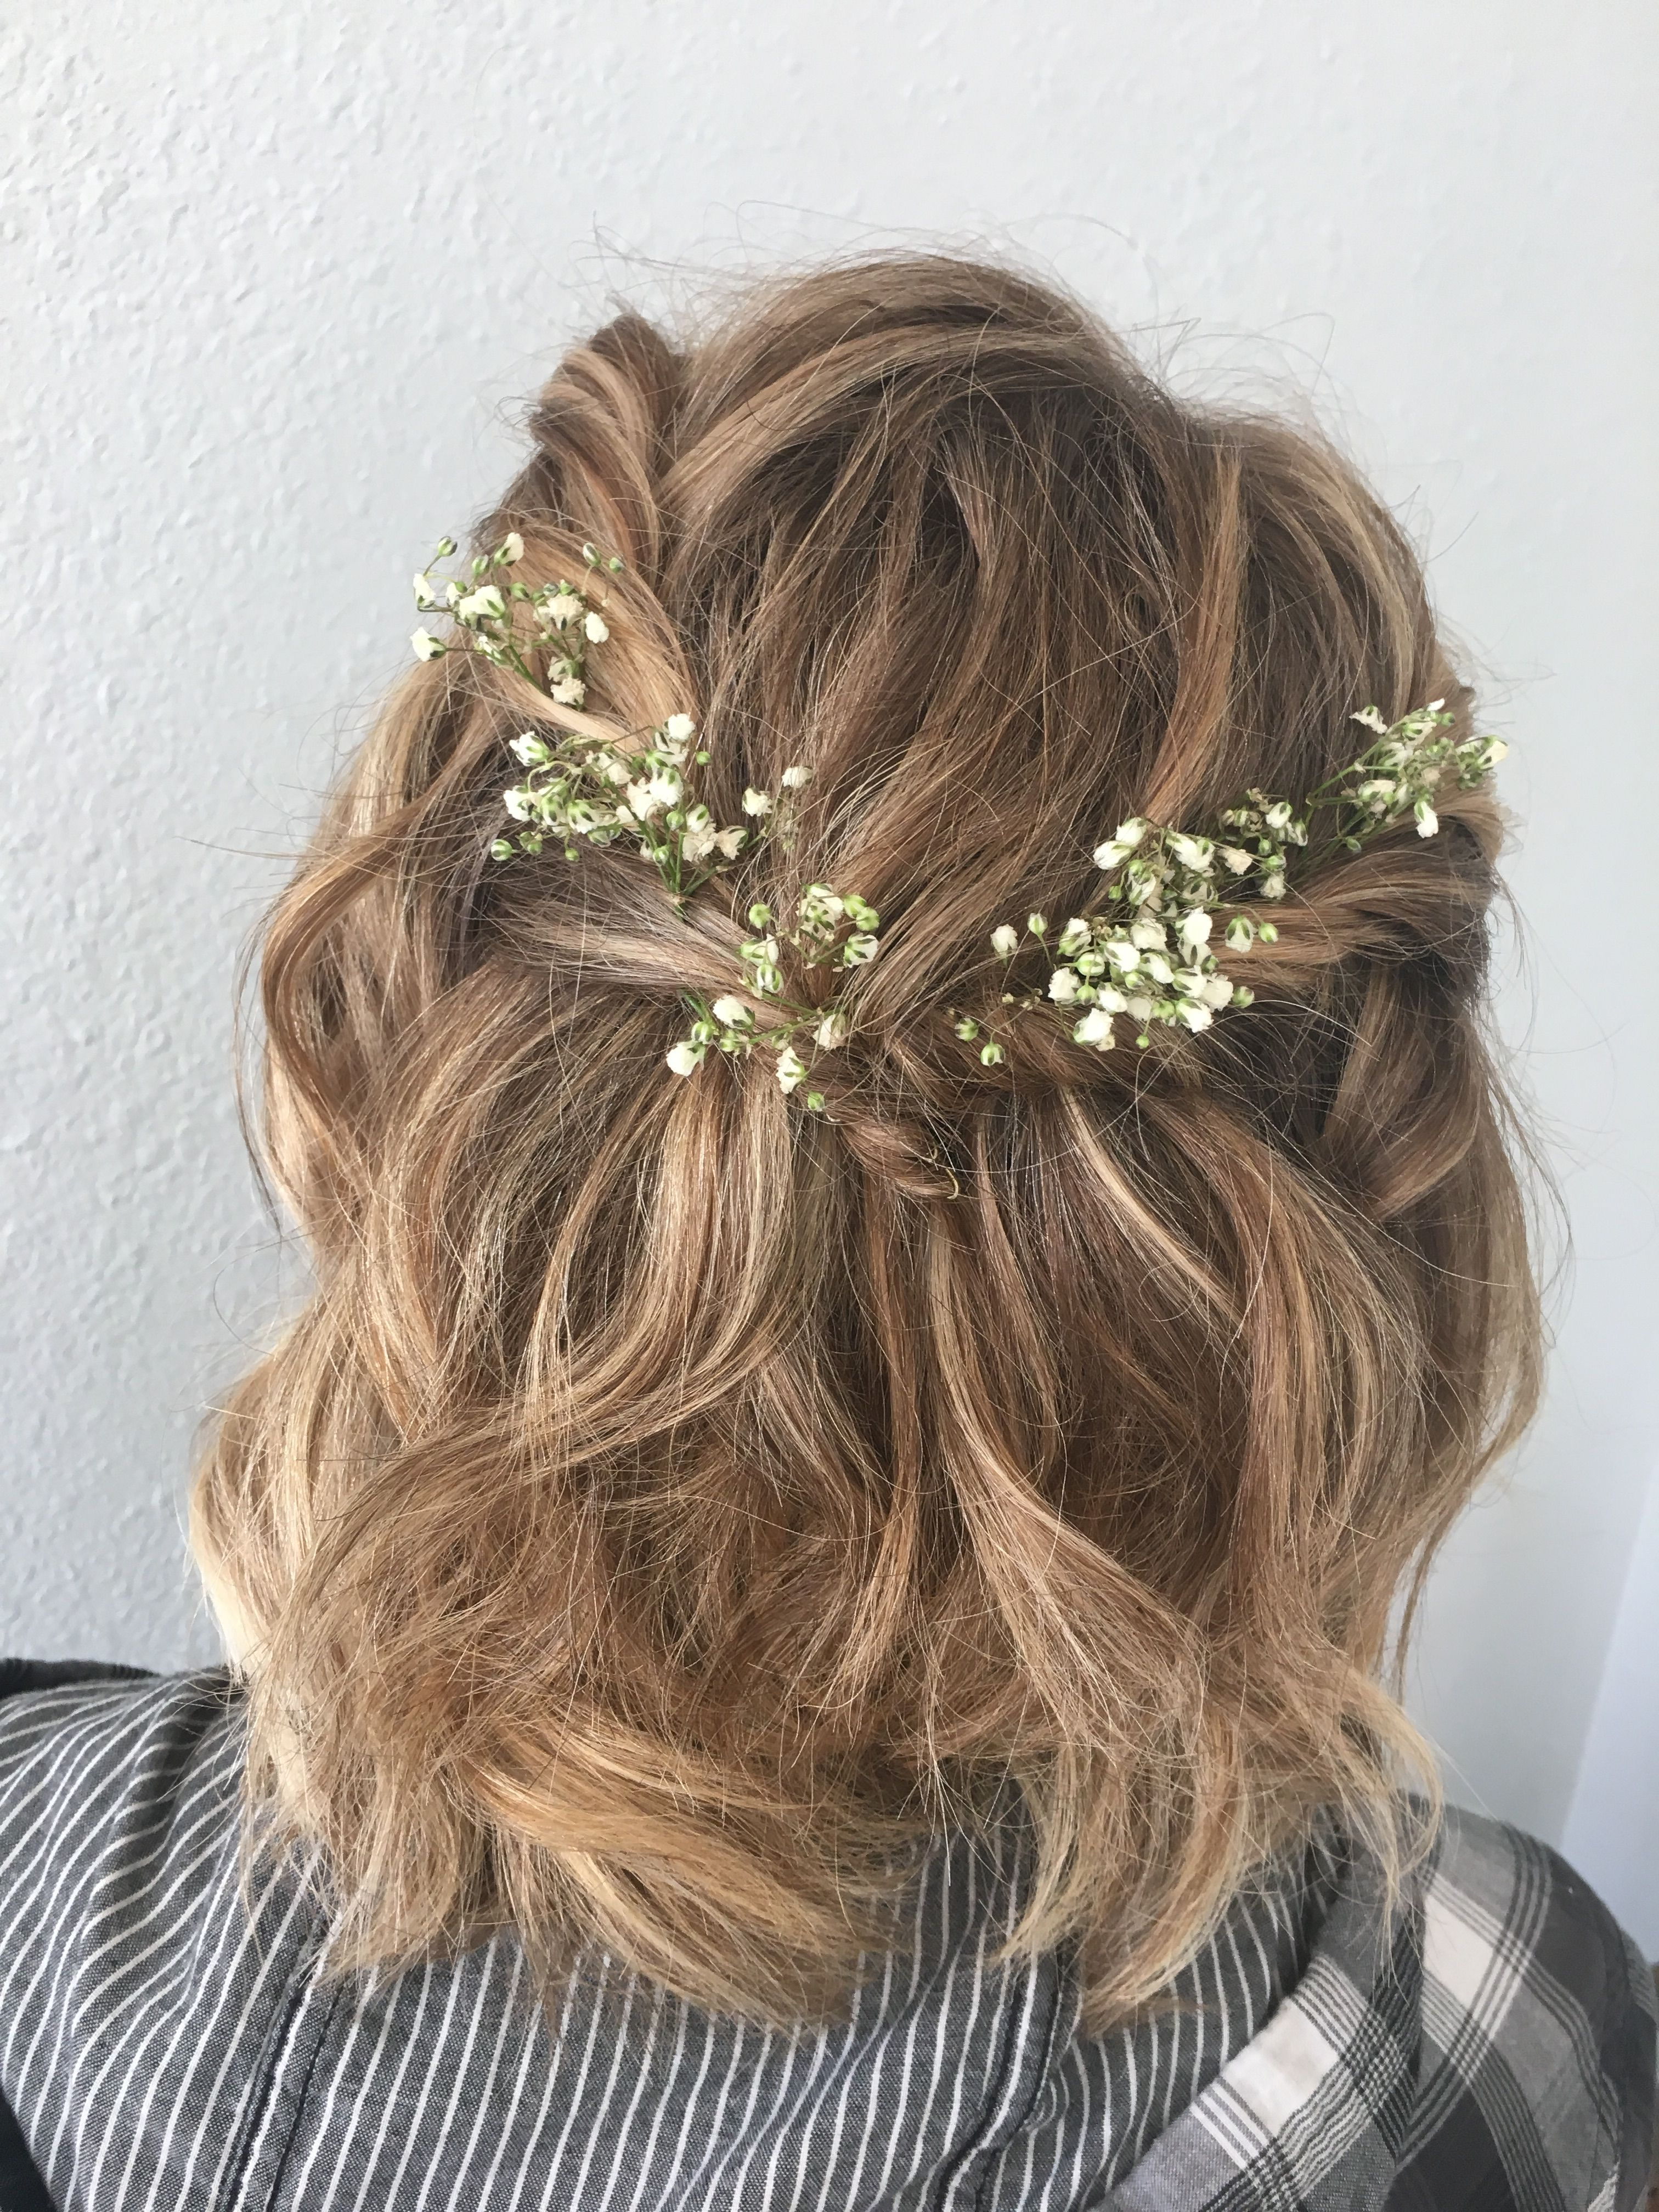 Short Hair Style For Formal Homecoming And Prom With Flowers In 2020 Prom Hairstyles For Short Hair Hair Styles Short Wedding Hair